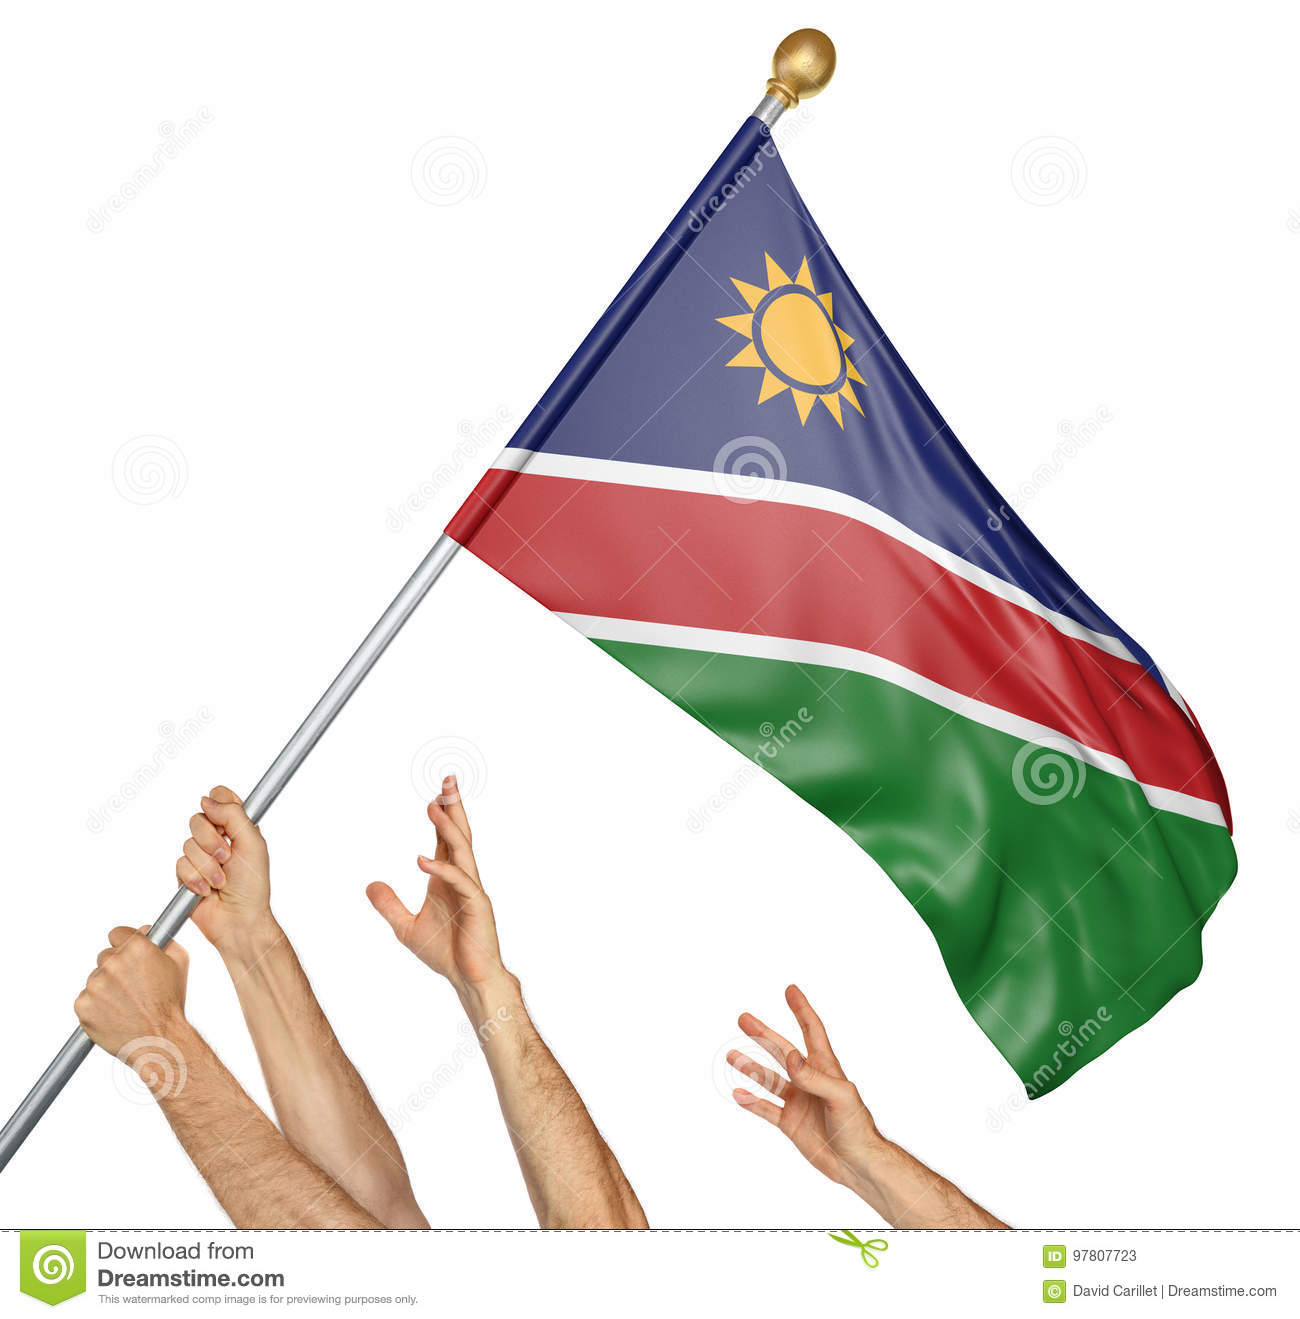 Team of peoples hands raising the Namibia national flag